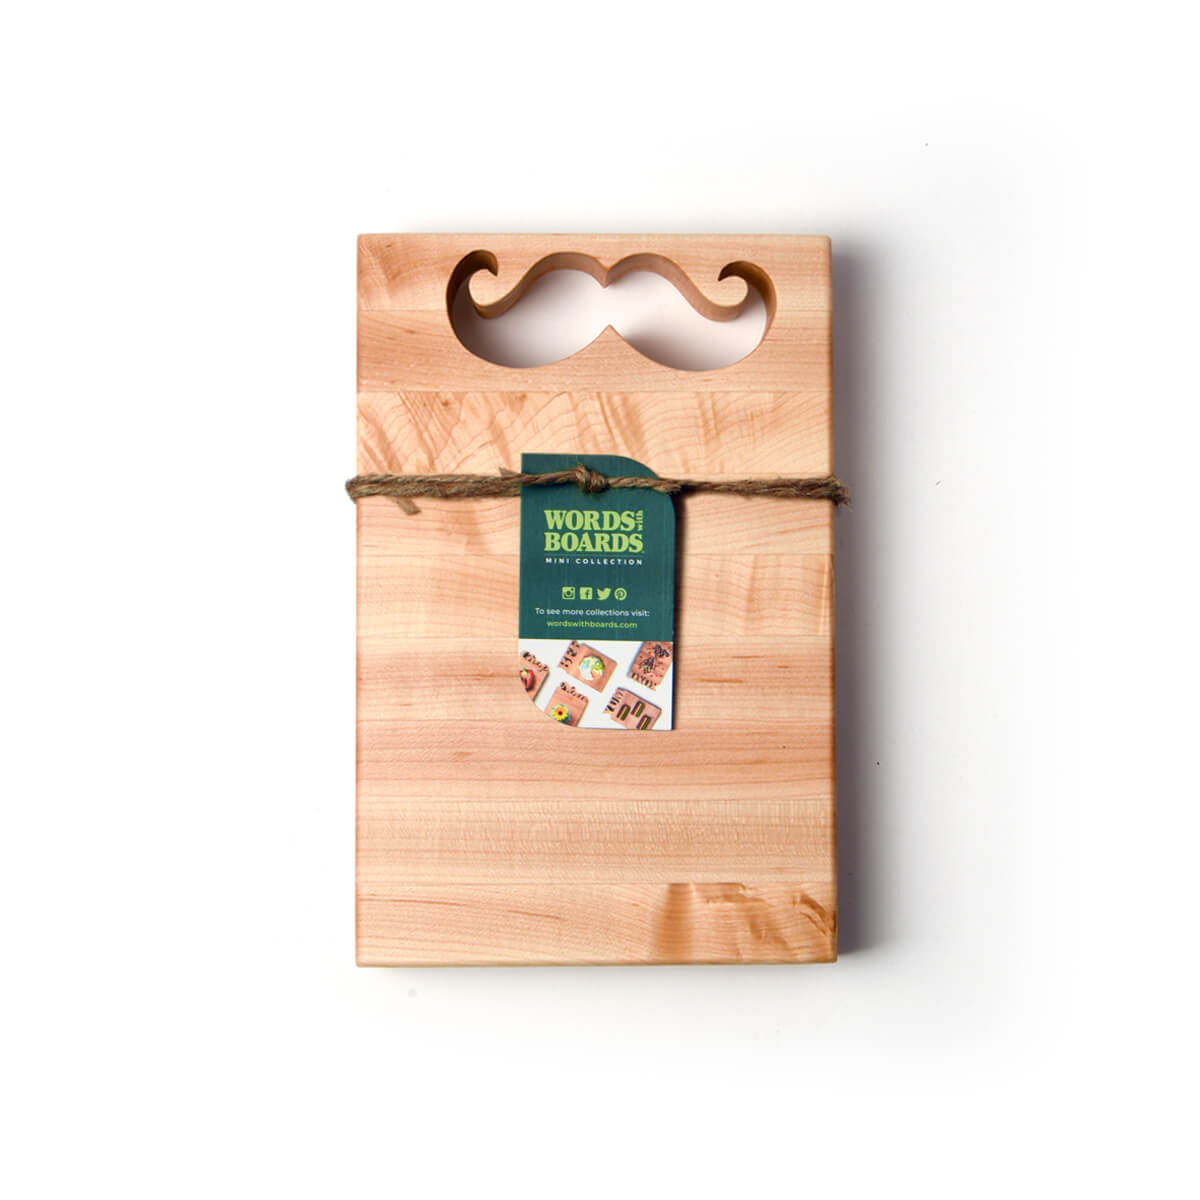 Mustache gift - wood cutting board with mustache shape cut out.jpg